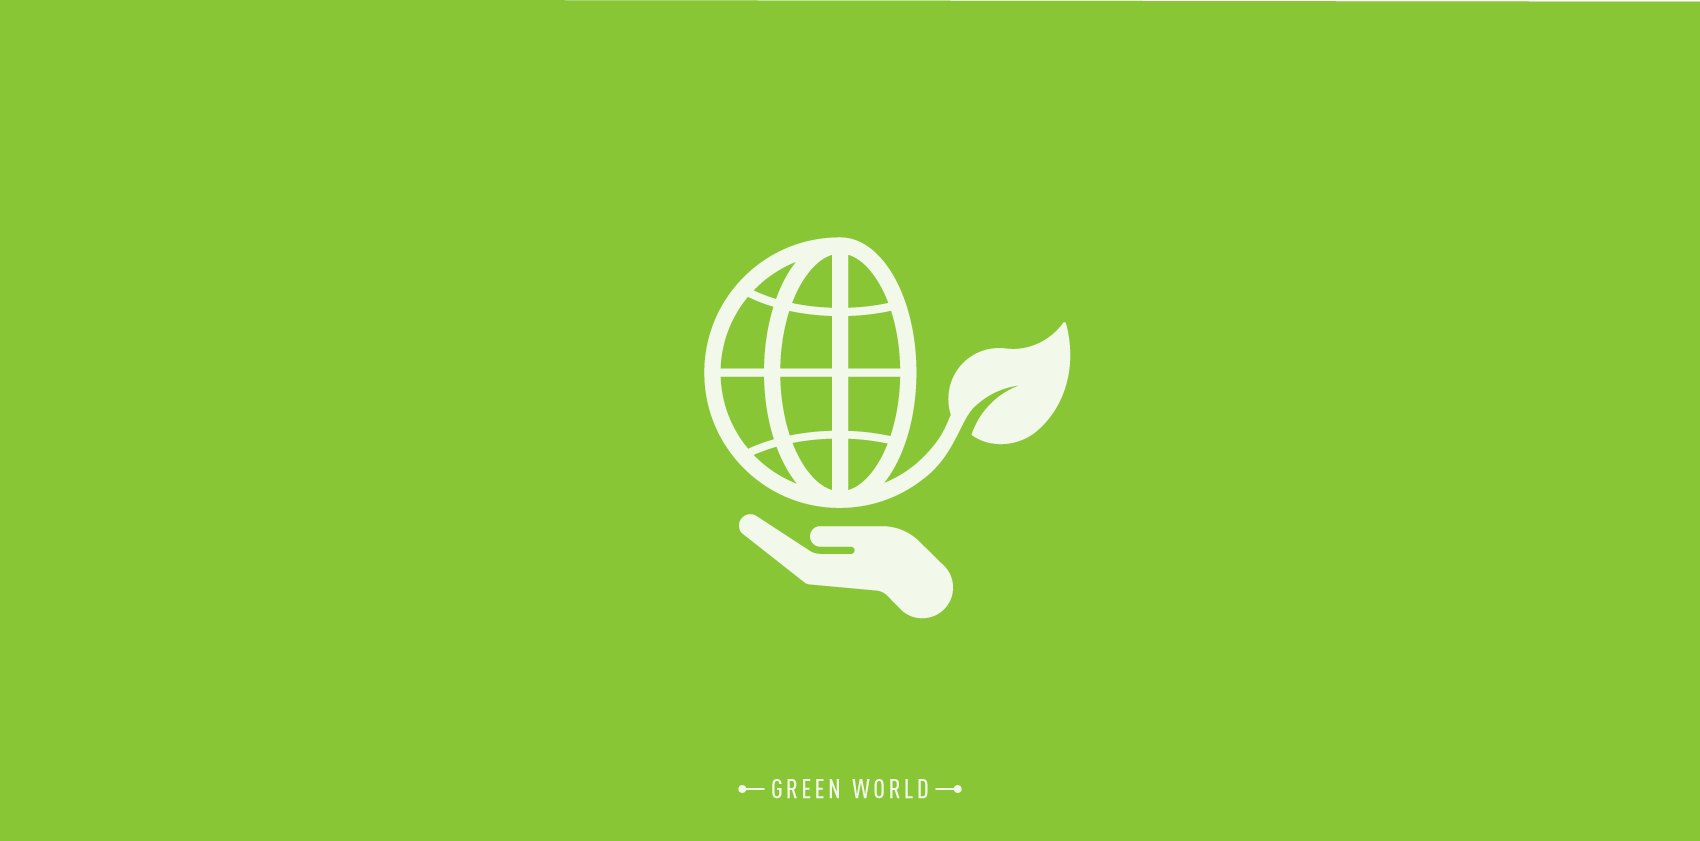 environmental icon design with a hand holding a globe: www.sodafish.com/green-and-environmental-pictogram-designs